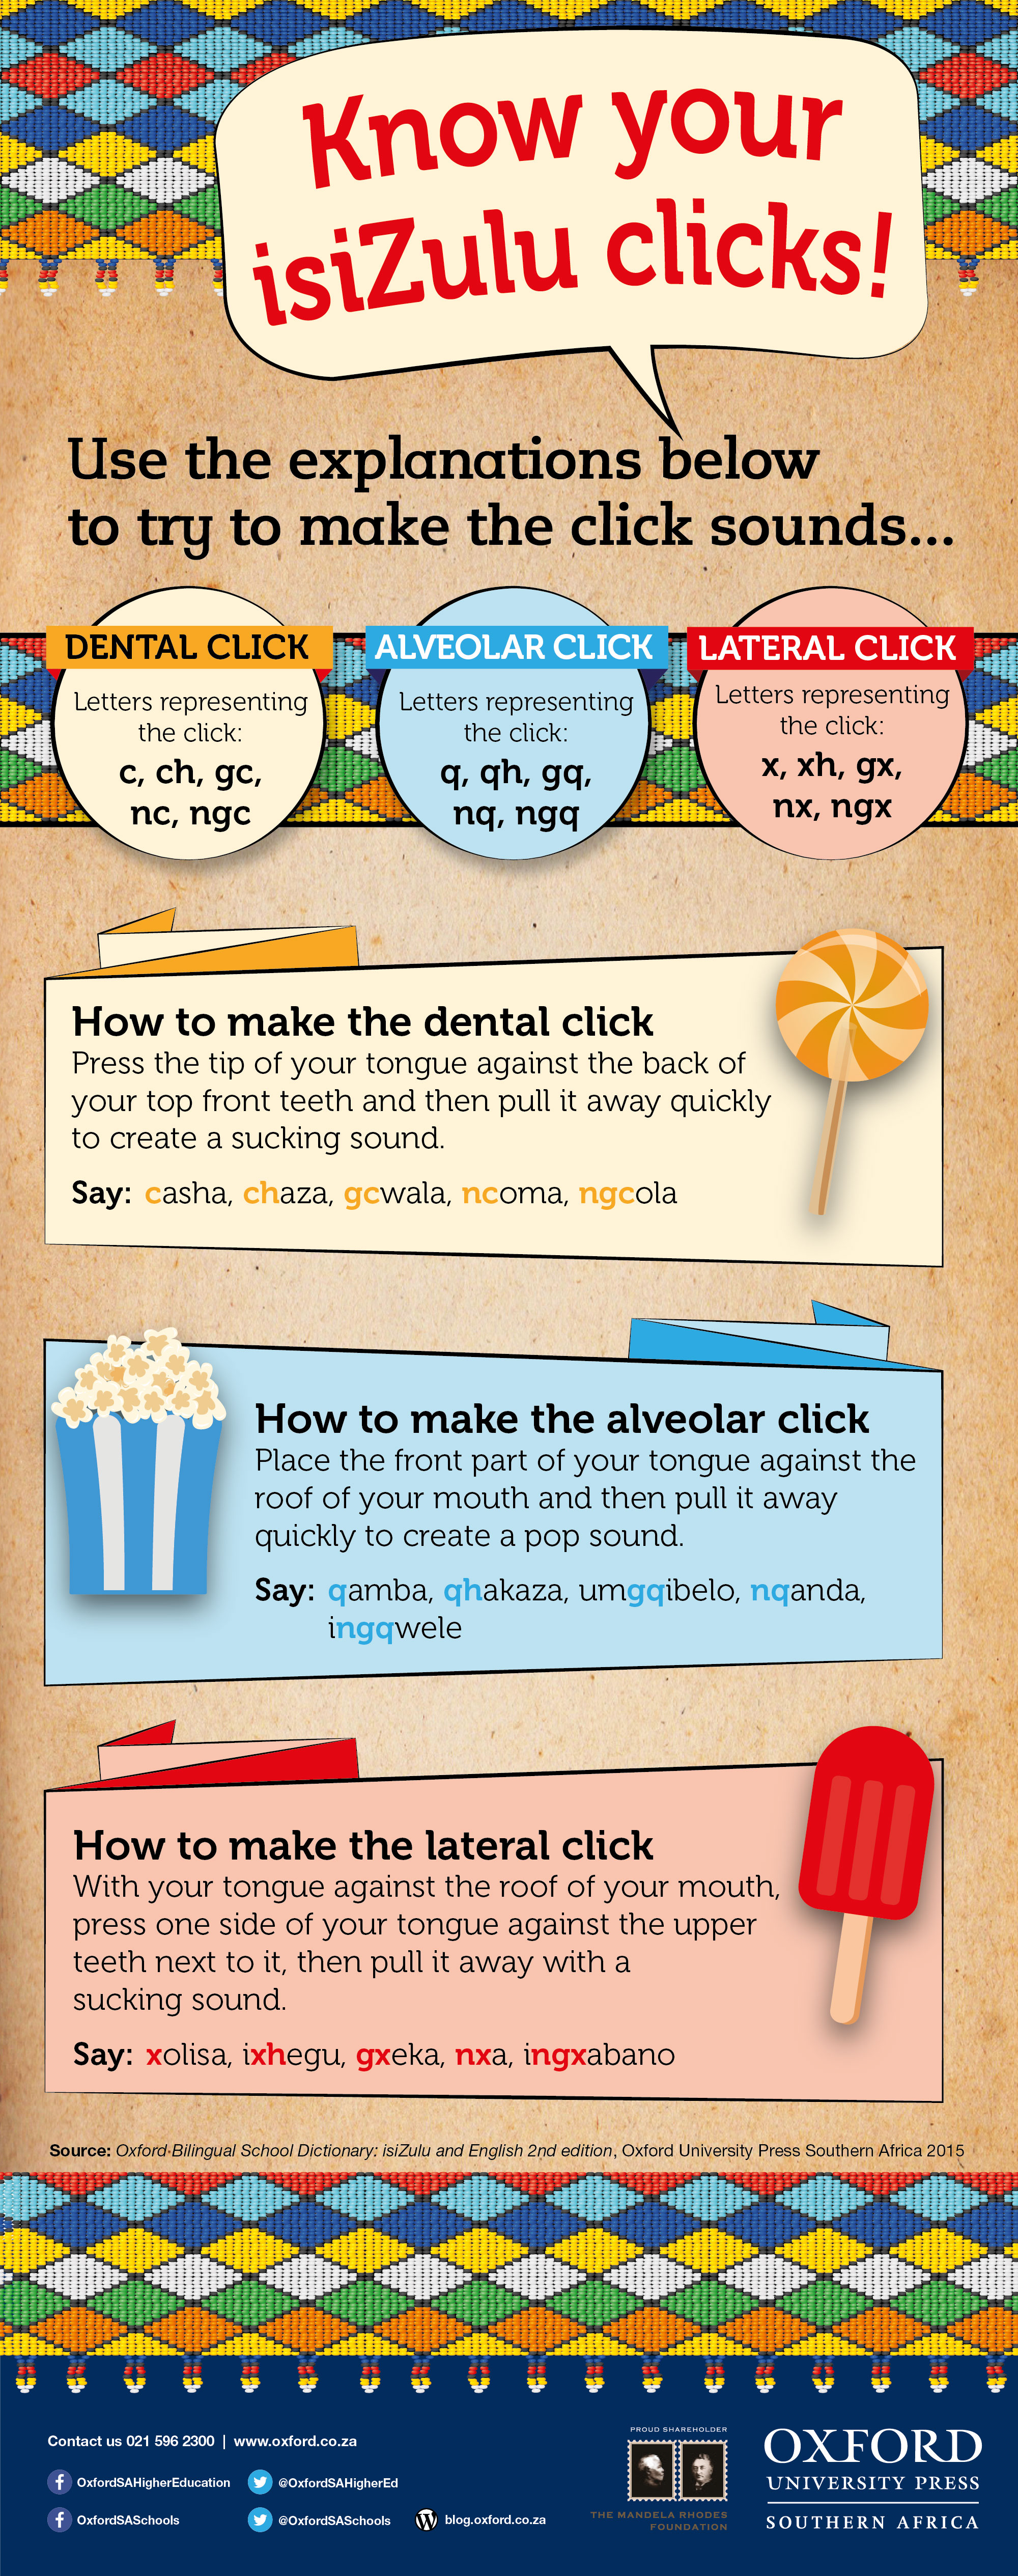 Know your isiZulu clicks